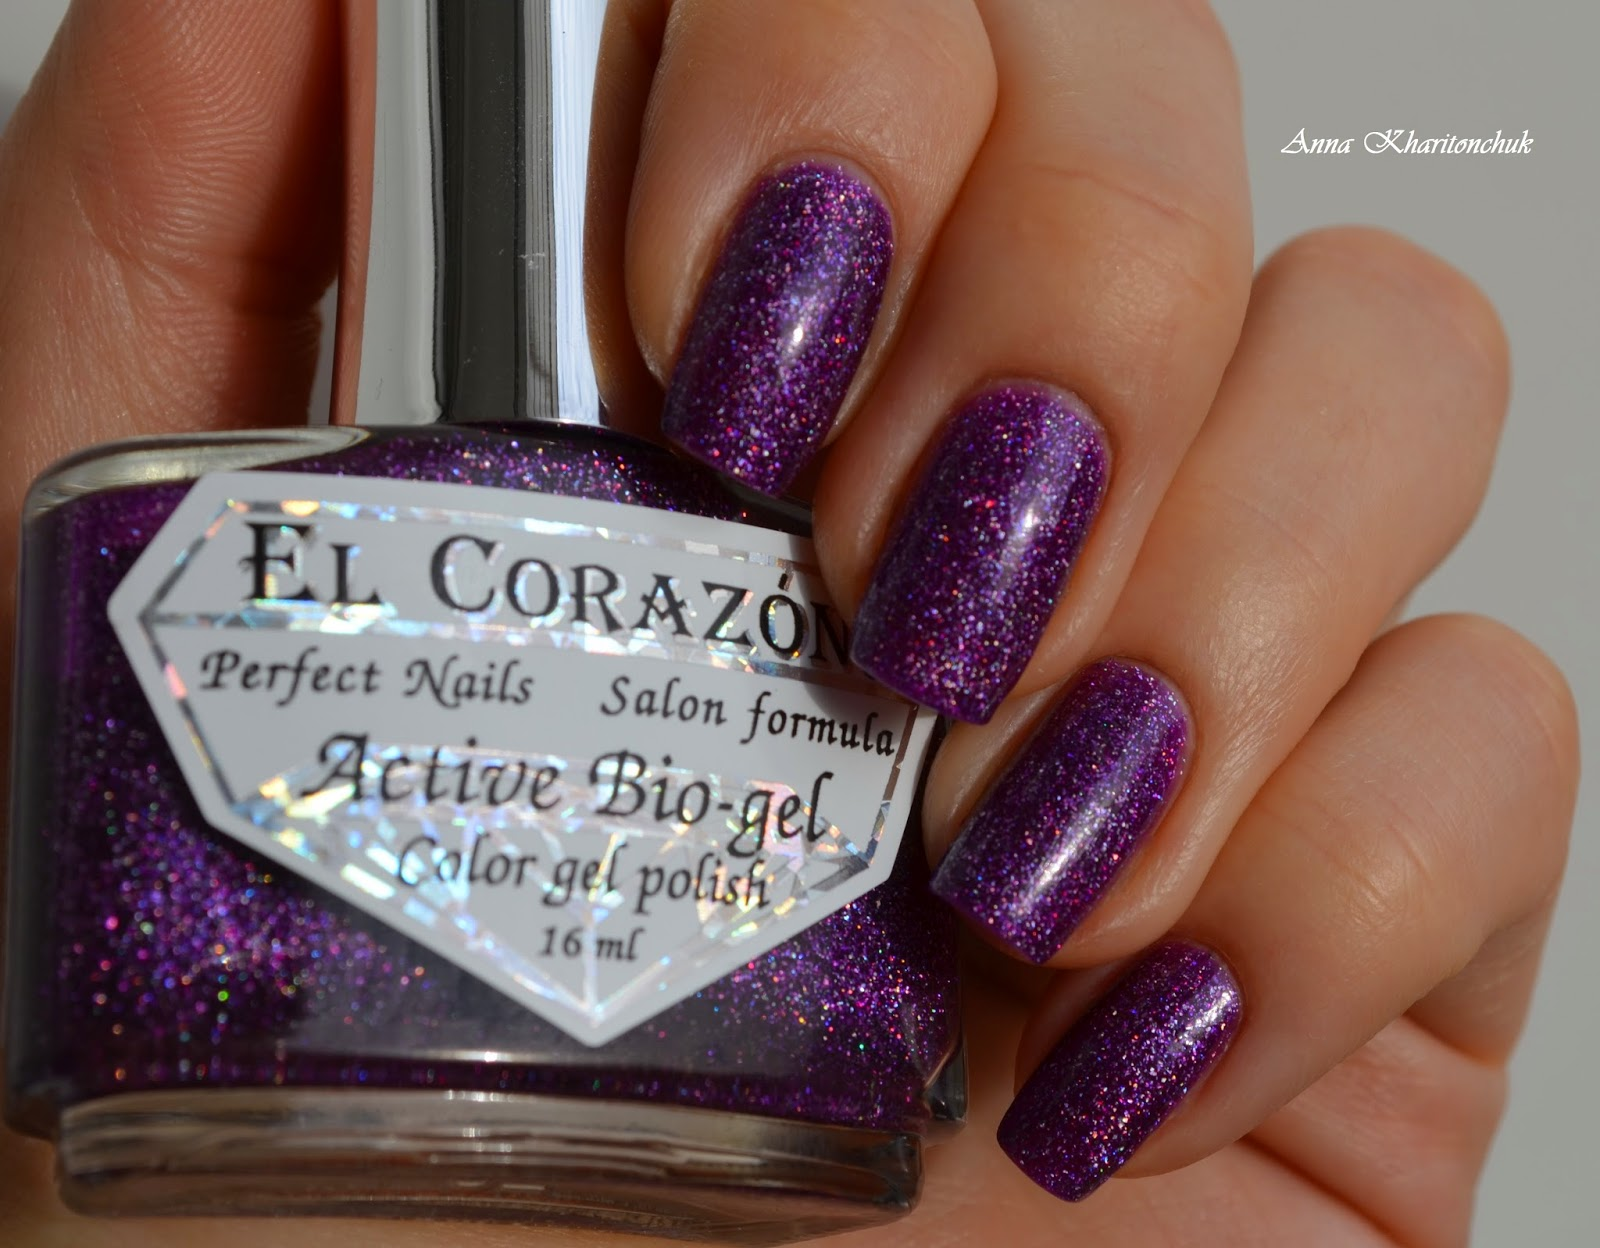 Winter11DNC. Фиолетовые ногти. EL Corazon Active Bio-Gel # 423/504 Large Hologram Butterfly и слайдер дизайн